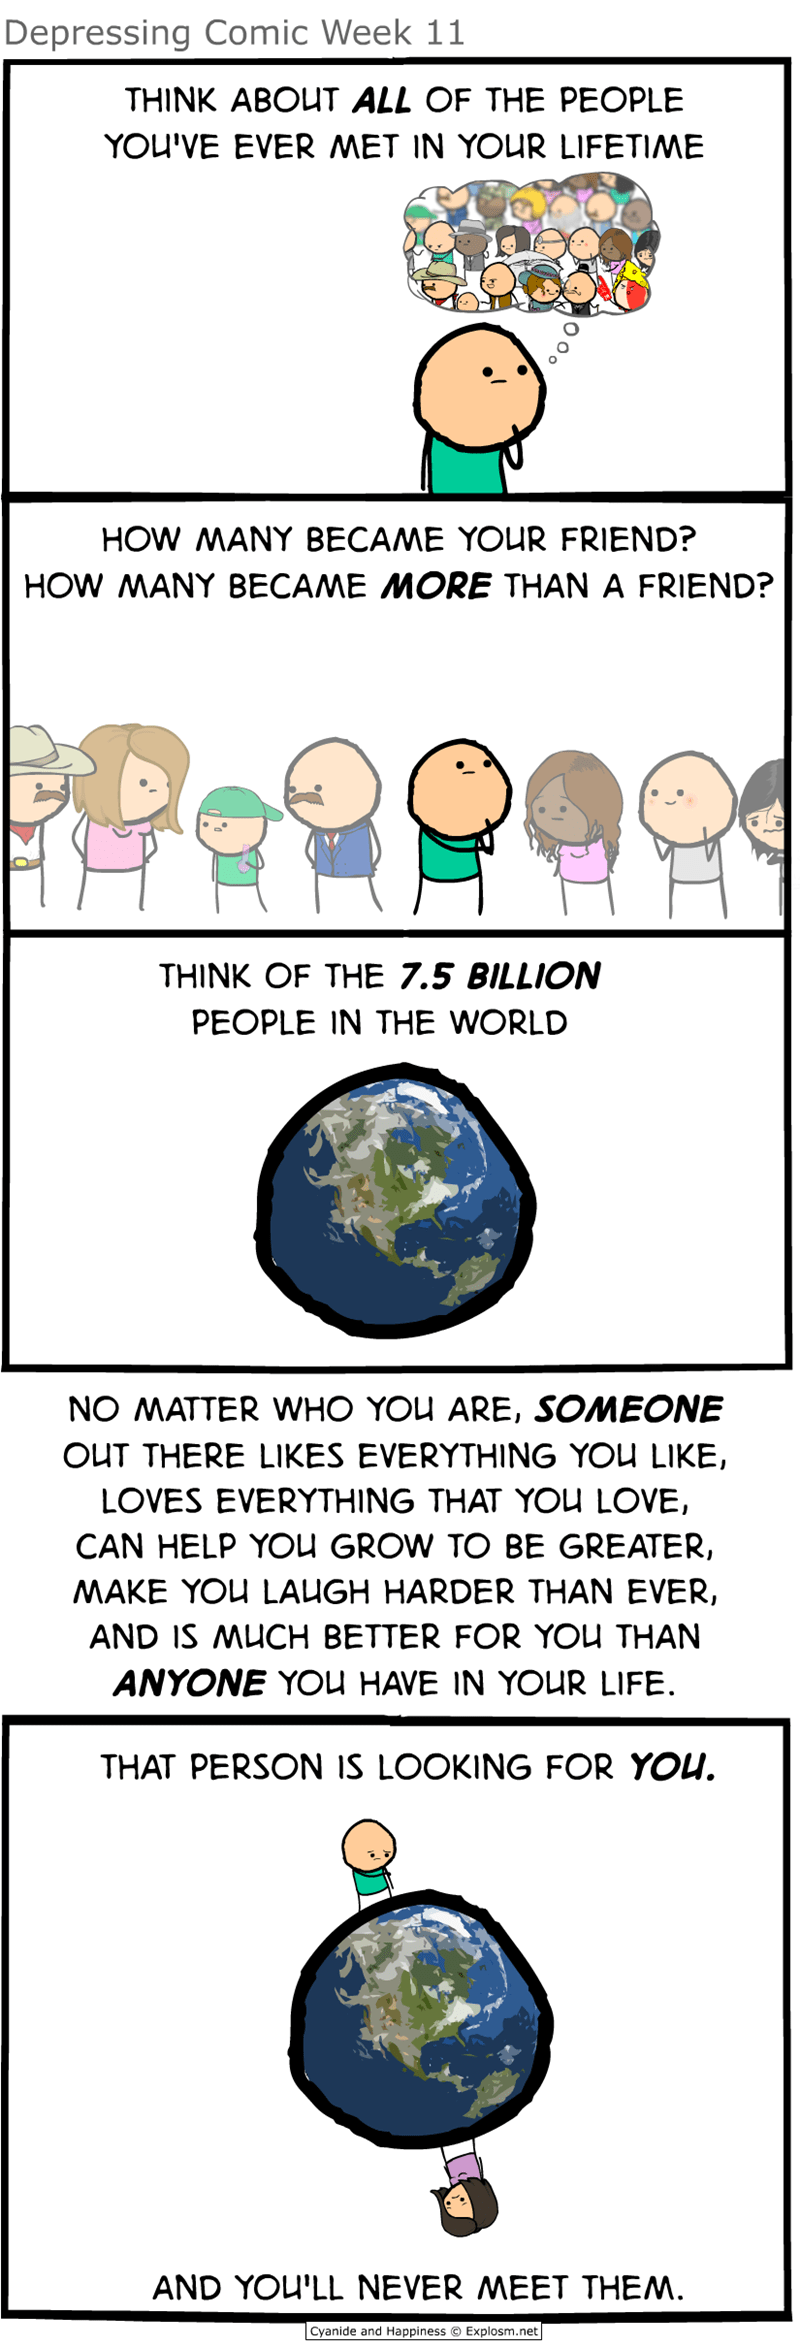 webcomic - Text - Depressing Comic Week 11 THINK ABOUT ALL OF THE PEOPLE YOU'VE EVER MET IN YOUR LIFETIME HOW MANY BECAME YOUR FRIEND? HOW MANY BECAME MORE THAN A FRIEND? THINK OF THE 7.5 BILLION PEOPLE IN THE WORLD NO MATTER WHO YOU ARE, SOMEONE OUT THERE LIKES EVERYTHING YOU LIKE, LOVES EVERYTHING THAT YOU LOVE, CAN HELP YOU GROW TO BE GREATER, MAKE YOU LAUGH HARDER THAN EVER, AND IS MUCH BETTER FOR YOU THAN ANYONE YOu HAVE IN YOUR LIFE THAT PERSON IS LOOKING FOR YOU. AND YOU'LL NEVER MEET THE